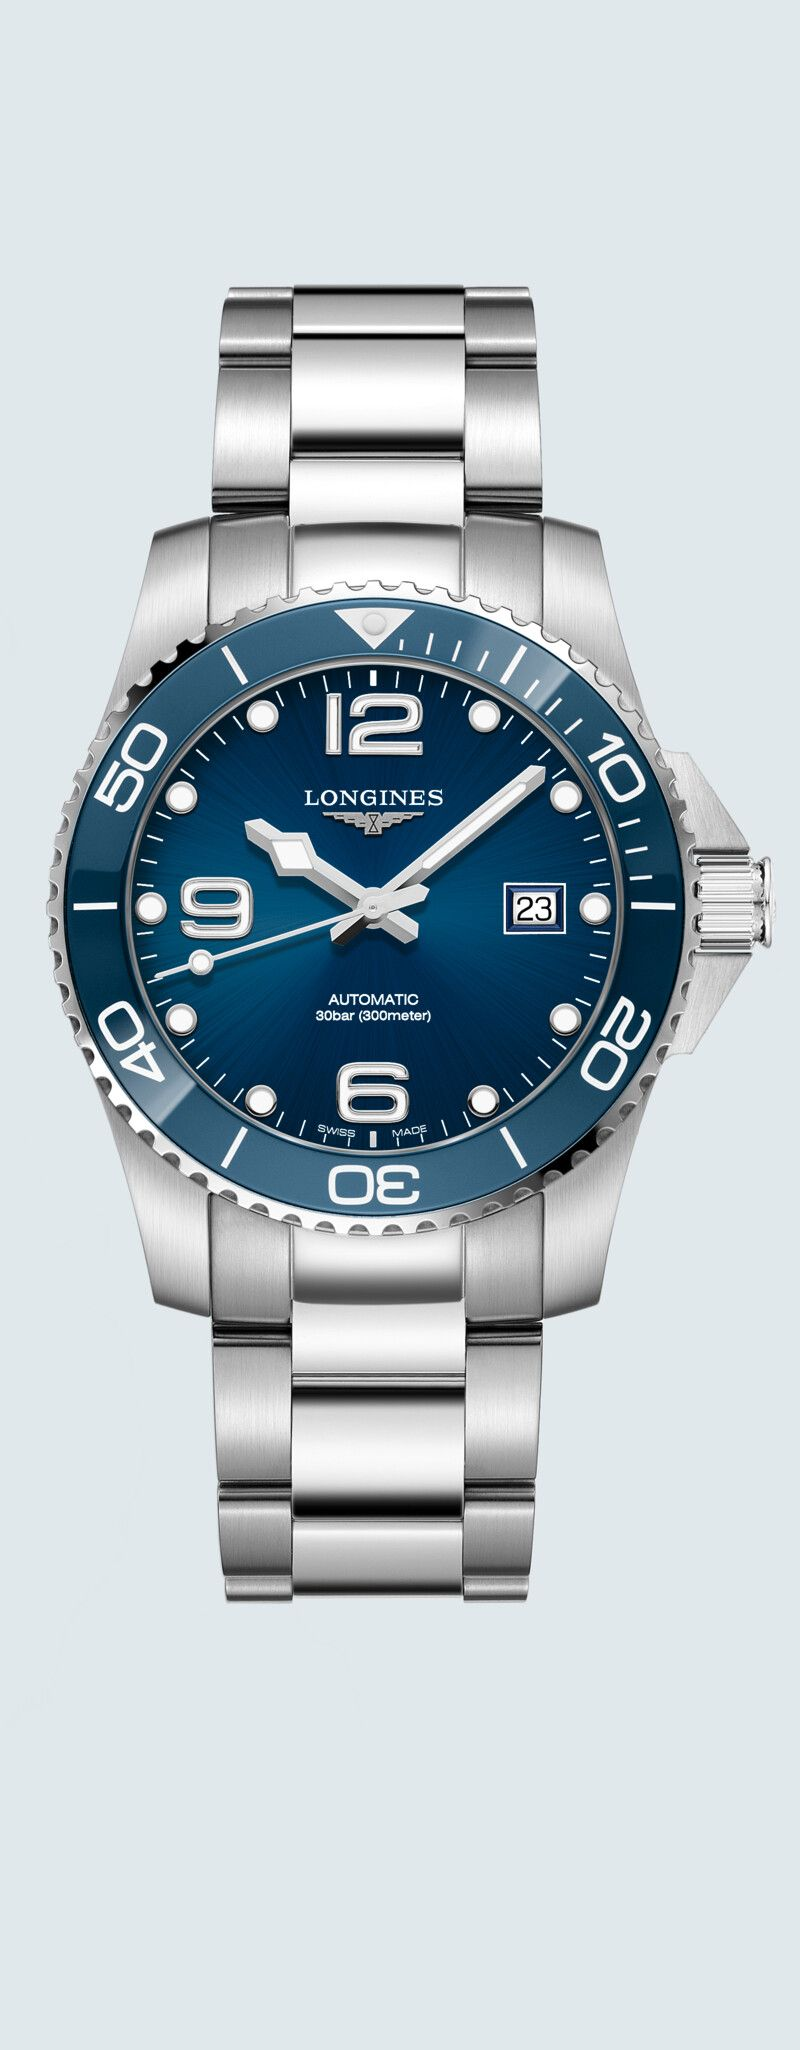 41.00 mm Stainless steel and ceramic case with Sunray blue dial and Stainless steel strap - case zo